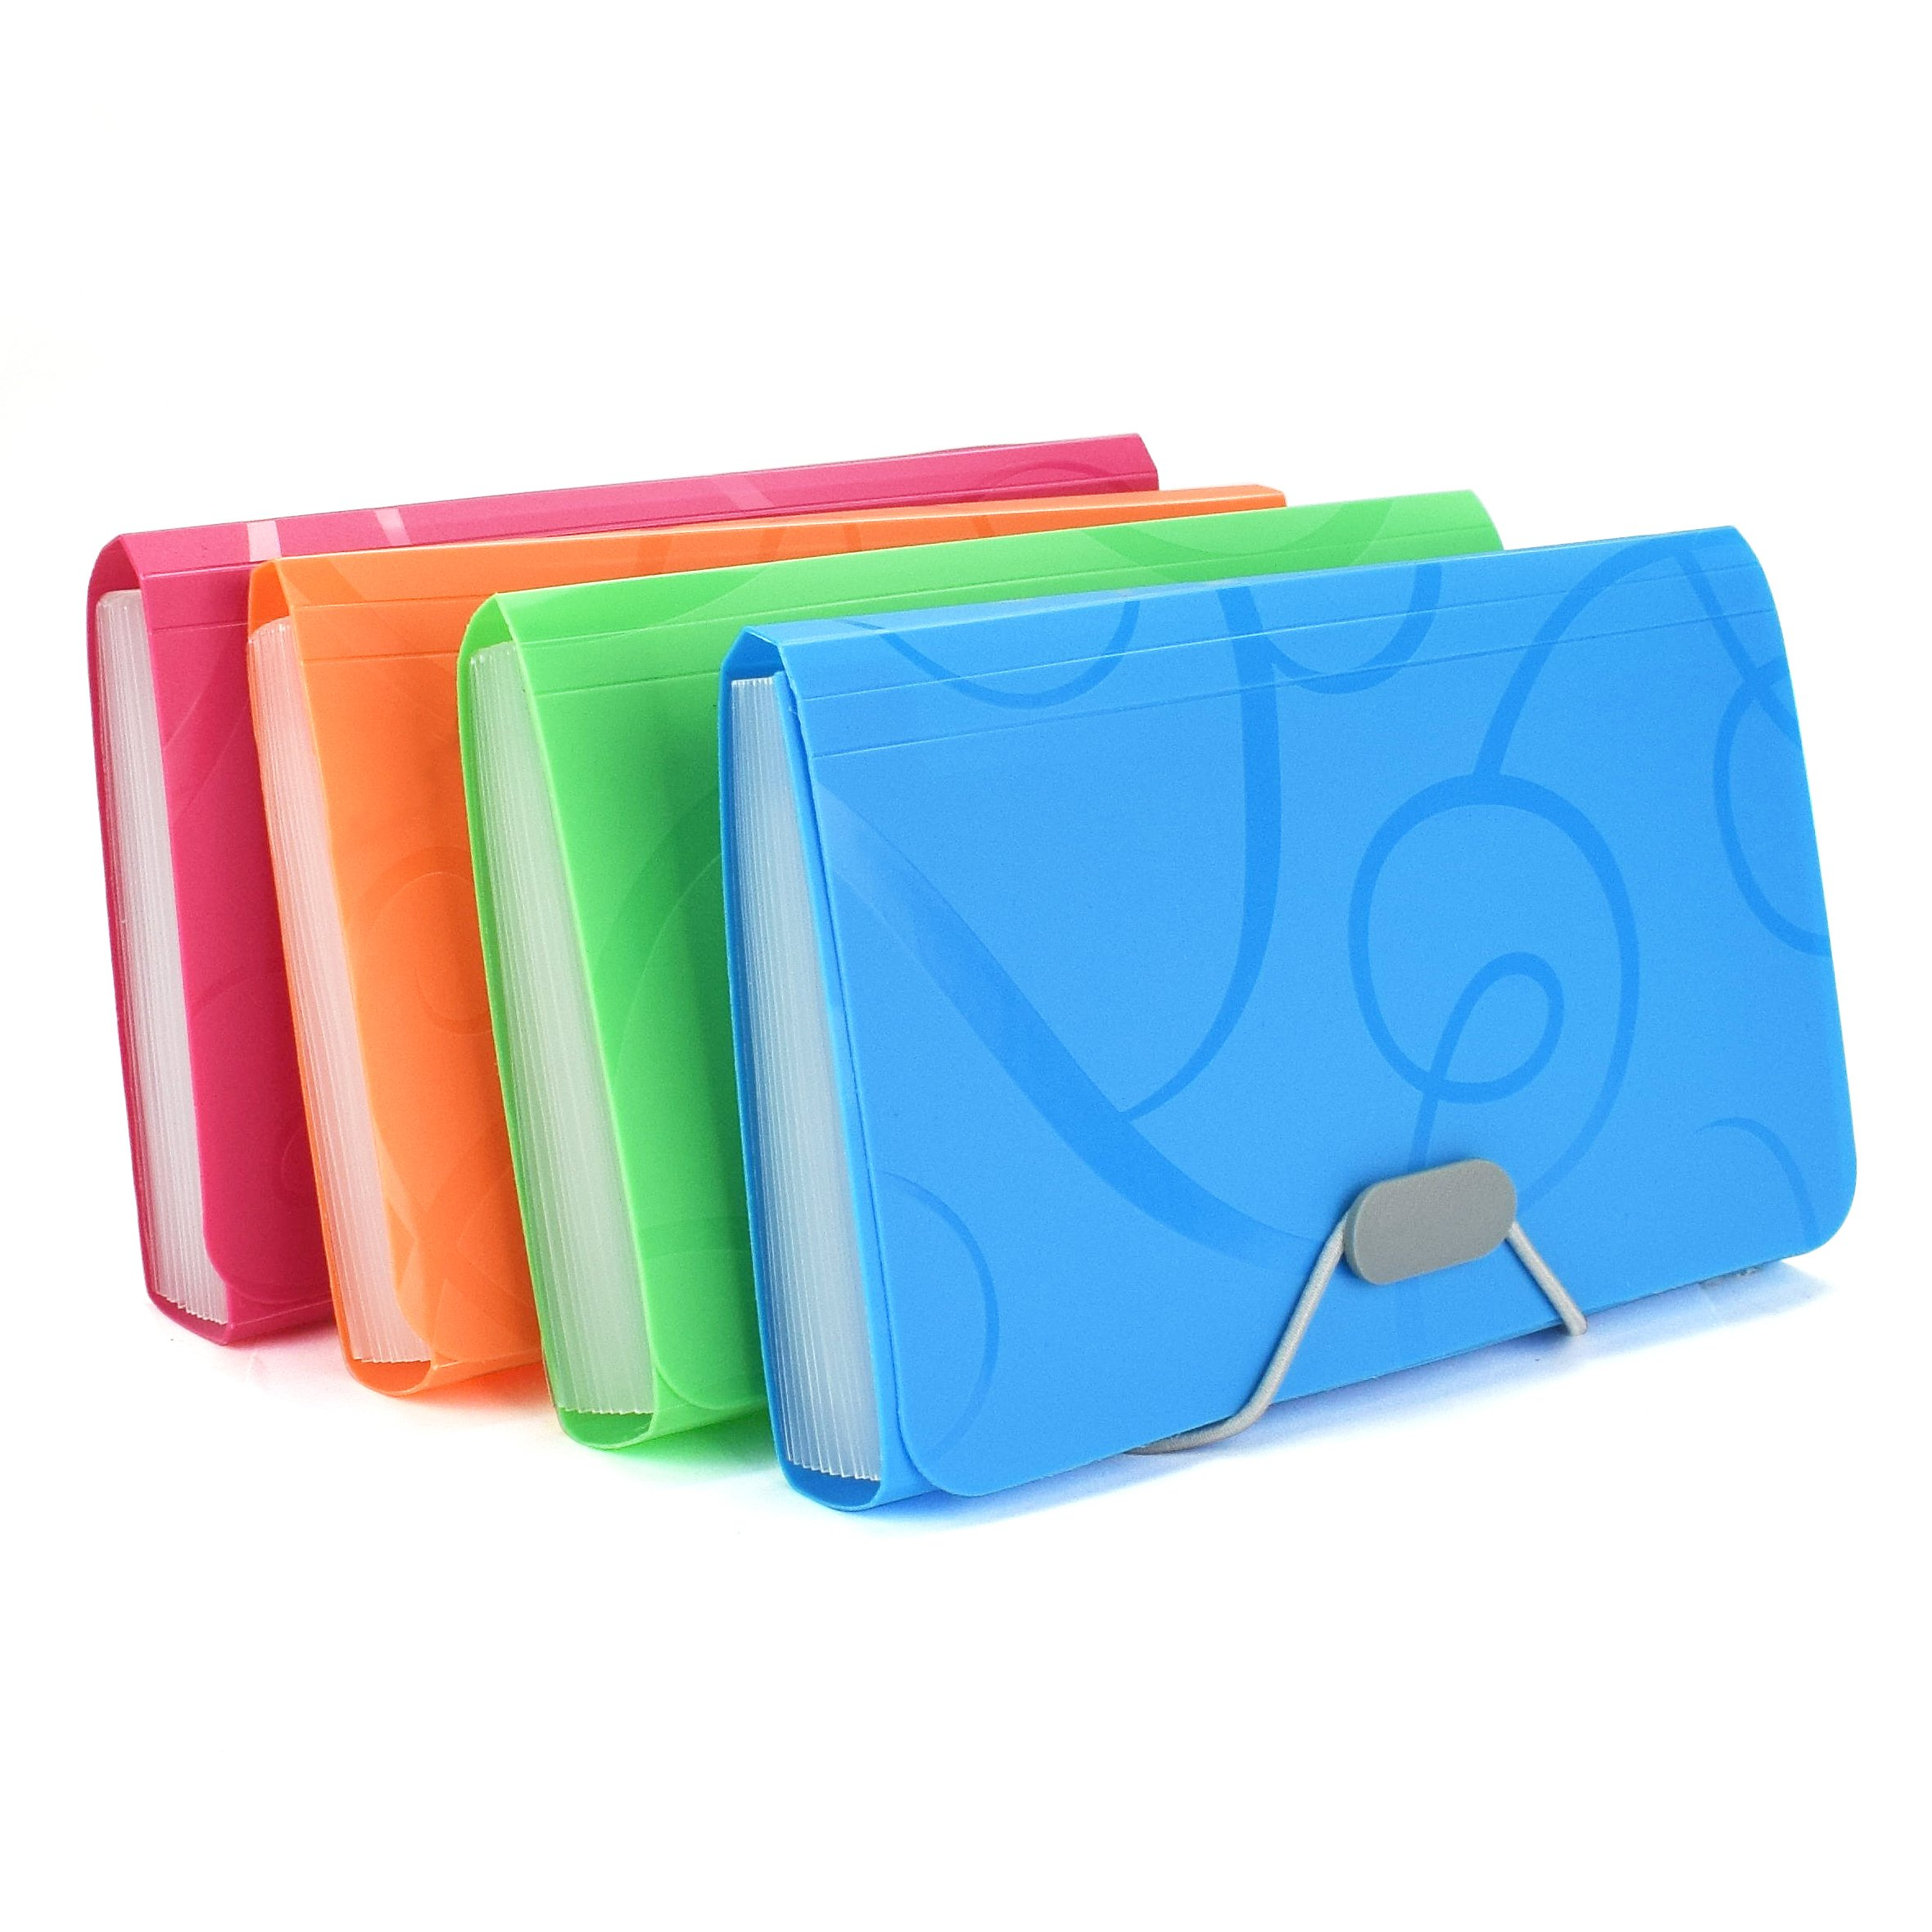 EsOfficce Expanding File Folder, Accordian File Organizer, 13 Pockets A6 Organizer Folder with 12 Labels Rope Buckle Closure,PP Wallet Organizer for Receipts, Coupons and Tickets, 4 Pcs/Pack